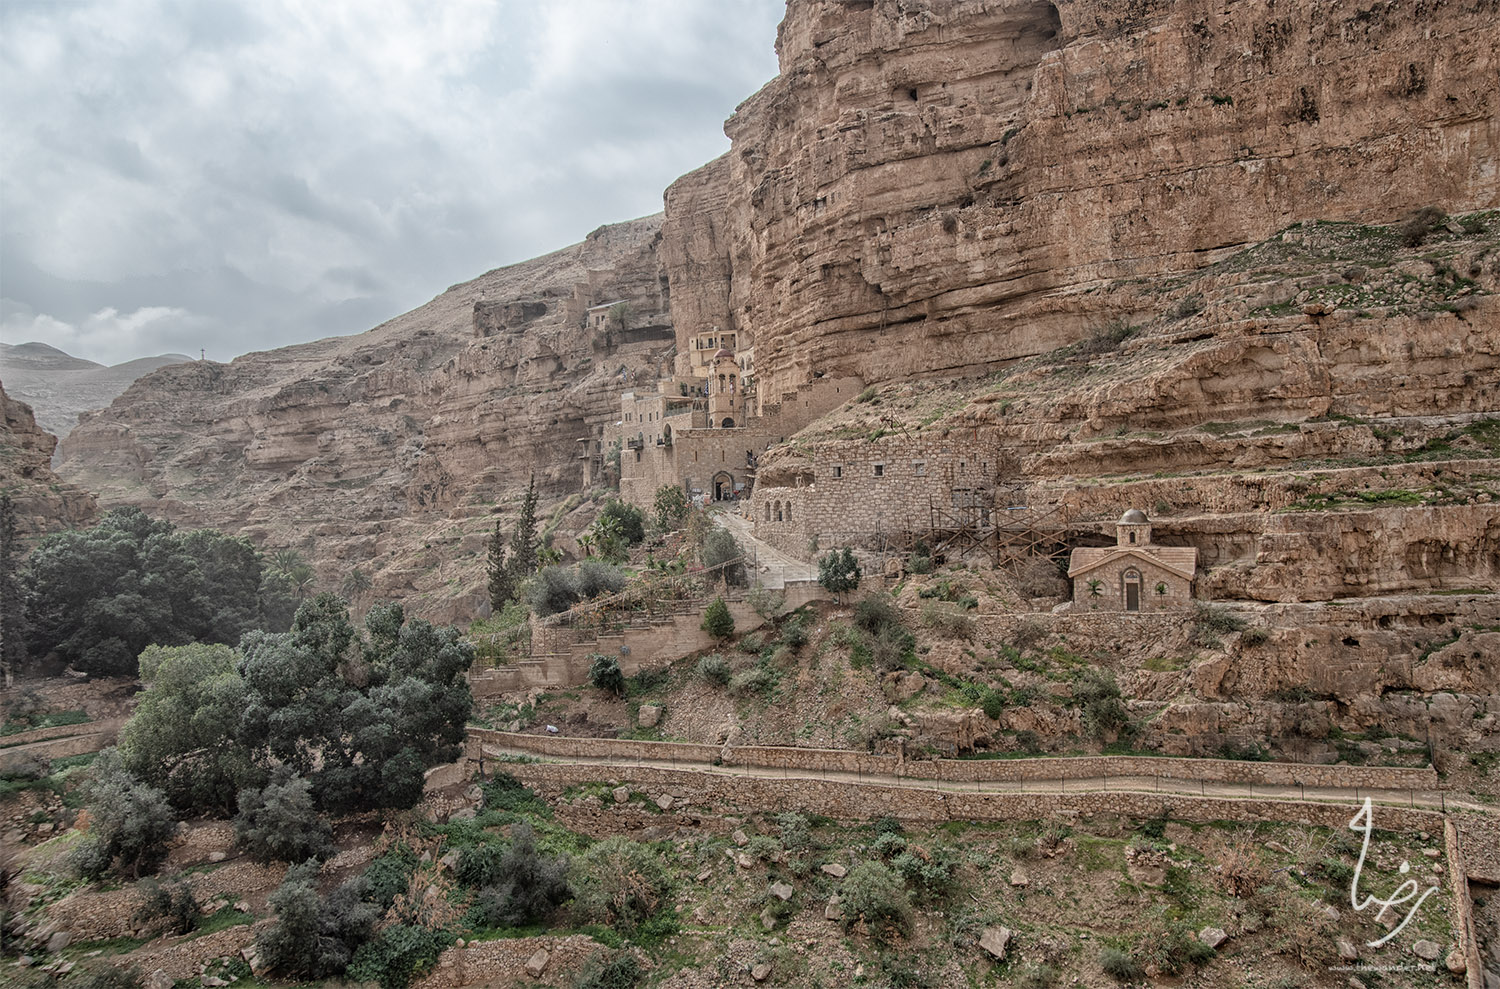 Monastery of St. George of Choziba, Wadi Qelt  The Monastery was established in 420CE. The Monastery is associated with the parents of Virgin Mary and holds the relics of three Eastern Orthodox saints, making it a site of intense pilgrimage.